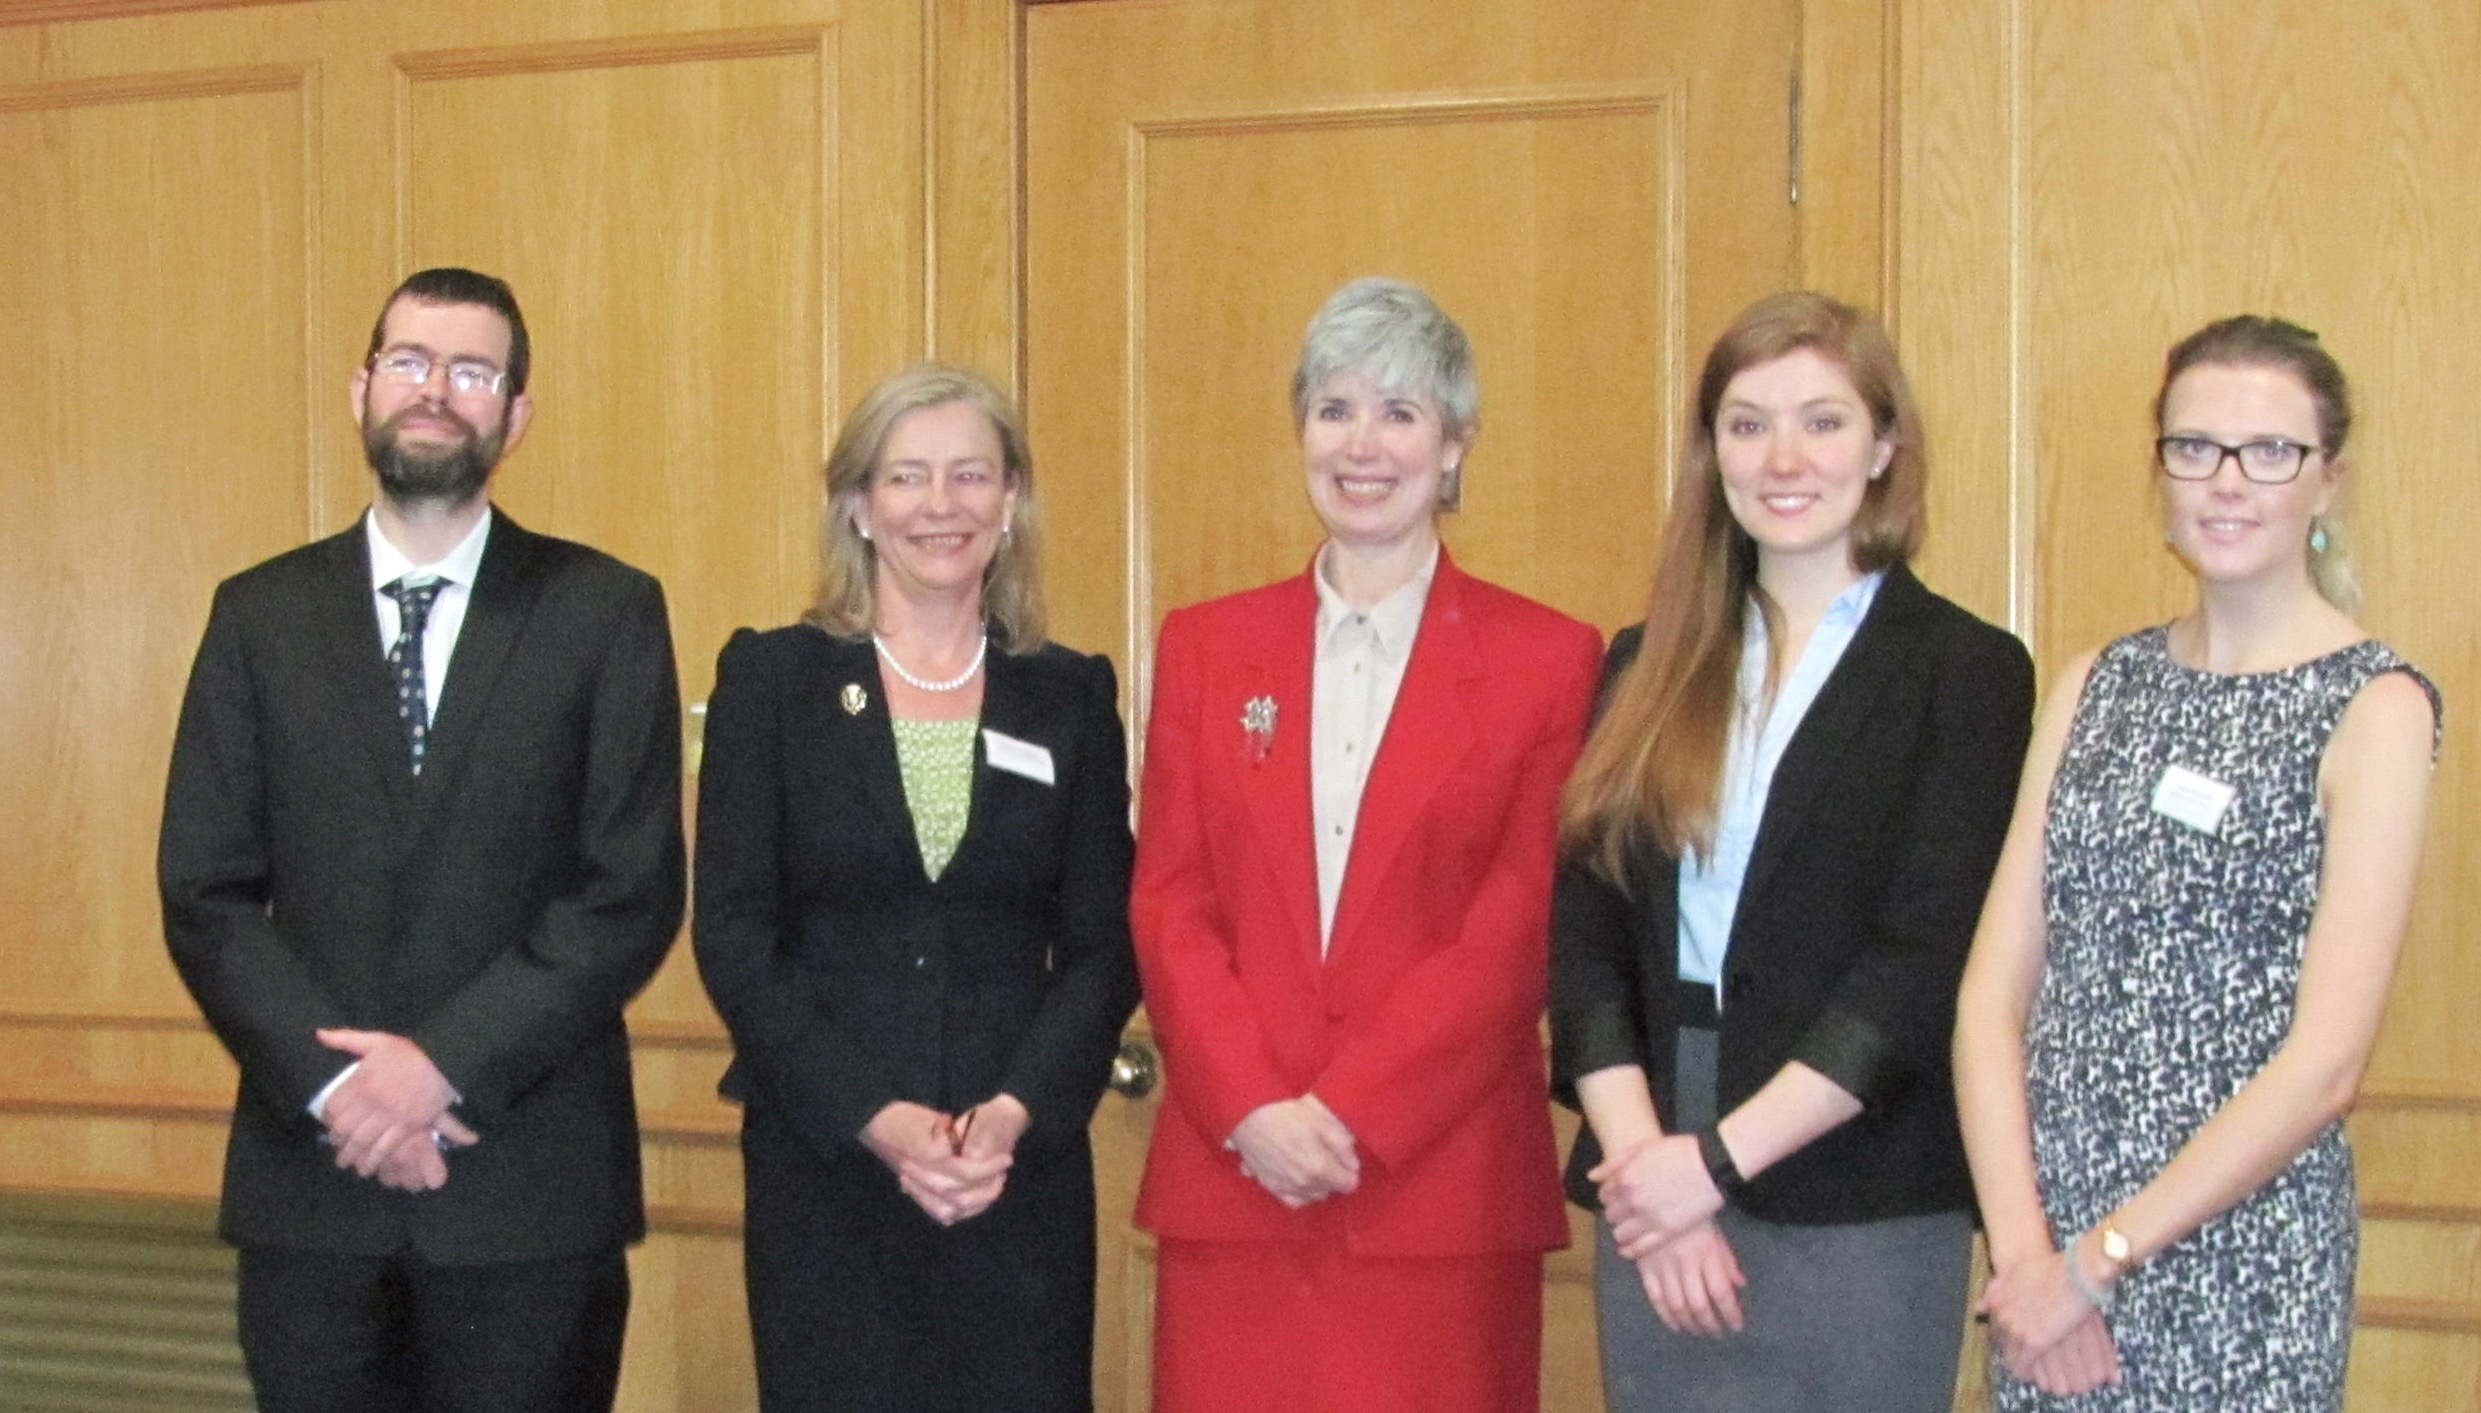 From L: Malcolm Combe (Faculty Director), Christine McLintock (President of the Law Society of Scotland), Anne-Michelle Slater (Head of the School of Law at Aberdeen University), Georgia Fotheringham (Deputy Student Director) and Lindsay McCormick (Student Director).